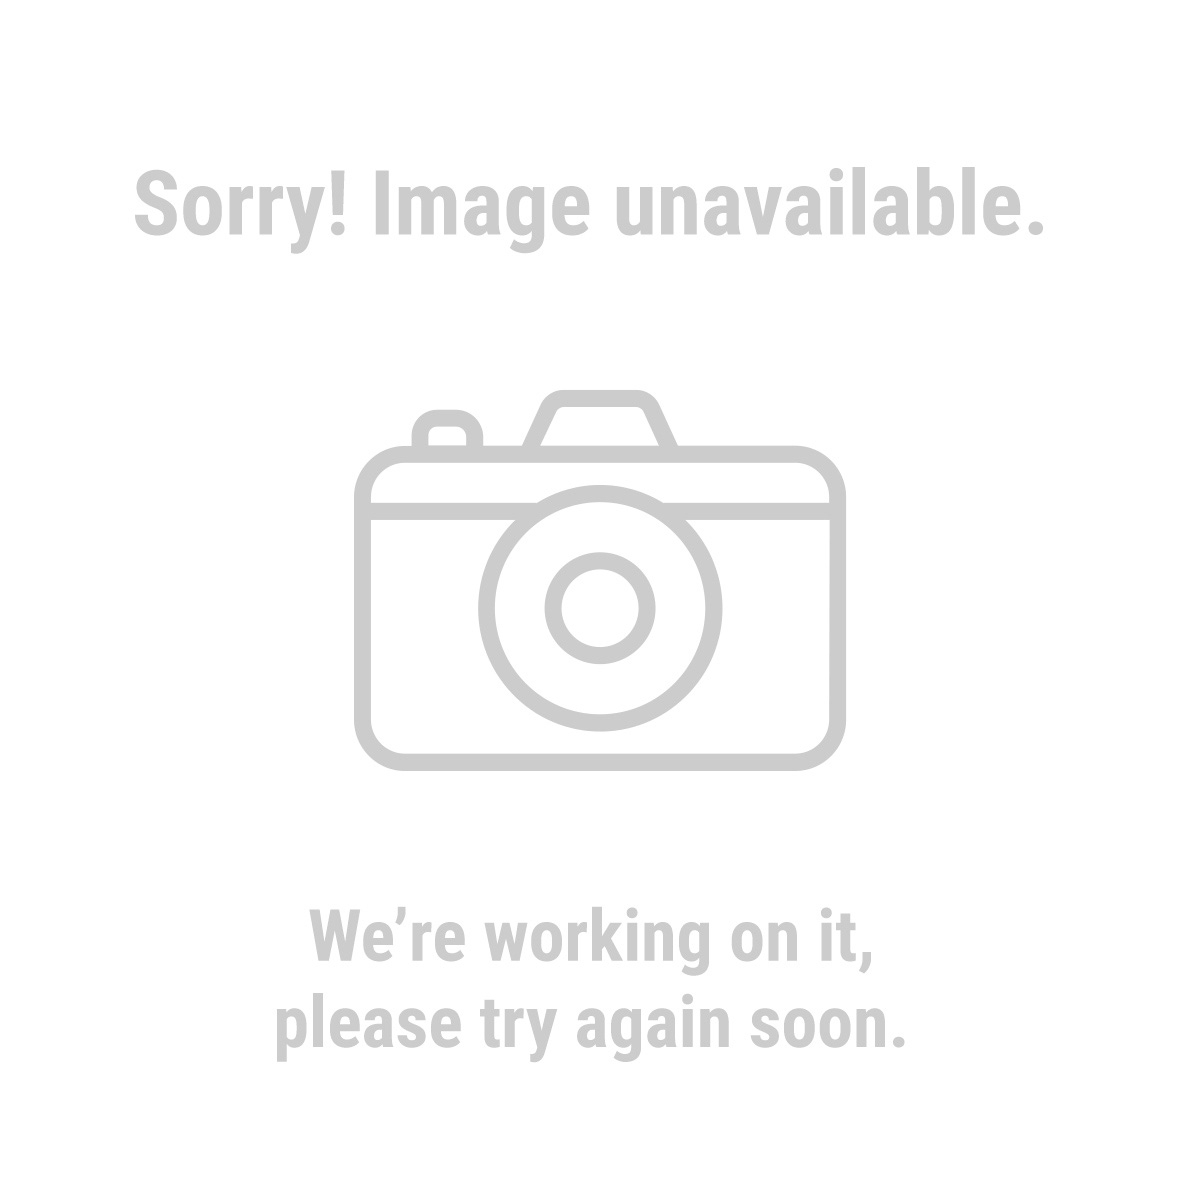 1500 Lbs. Capacity 120 Volt AC Electric Winch Badland Winches Wiring Diagram on